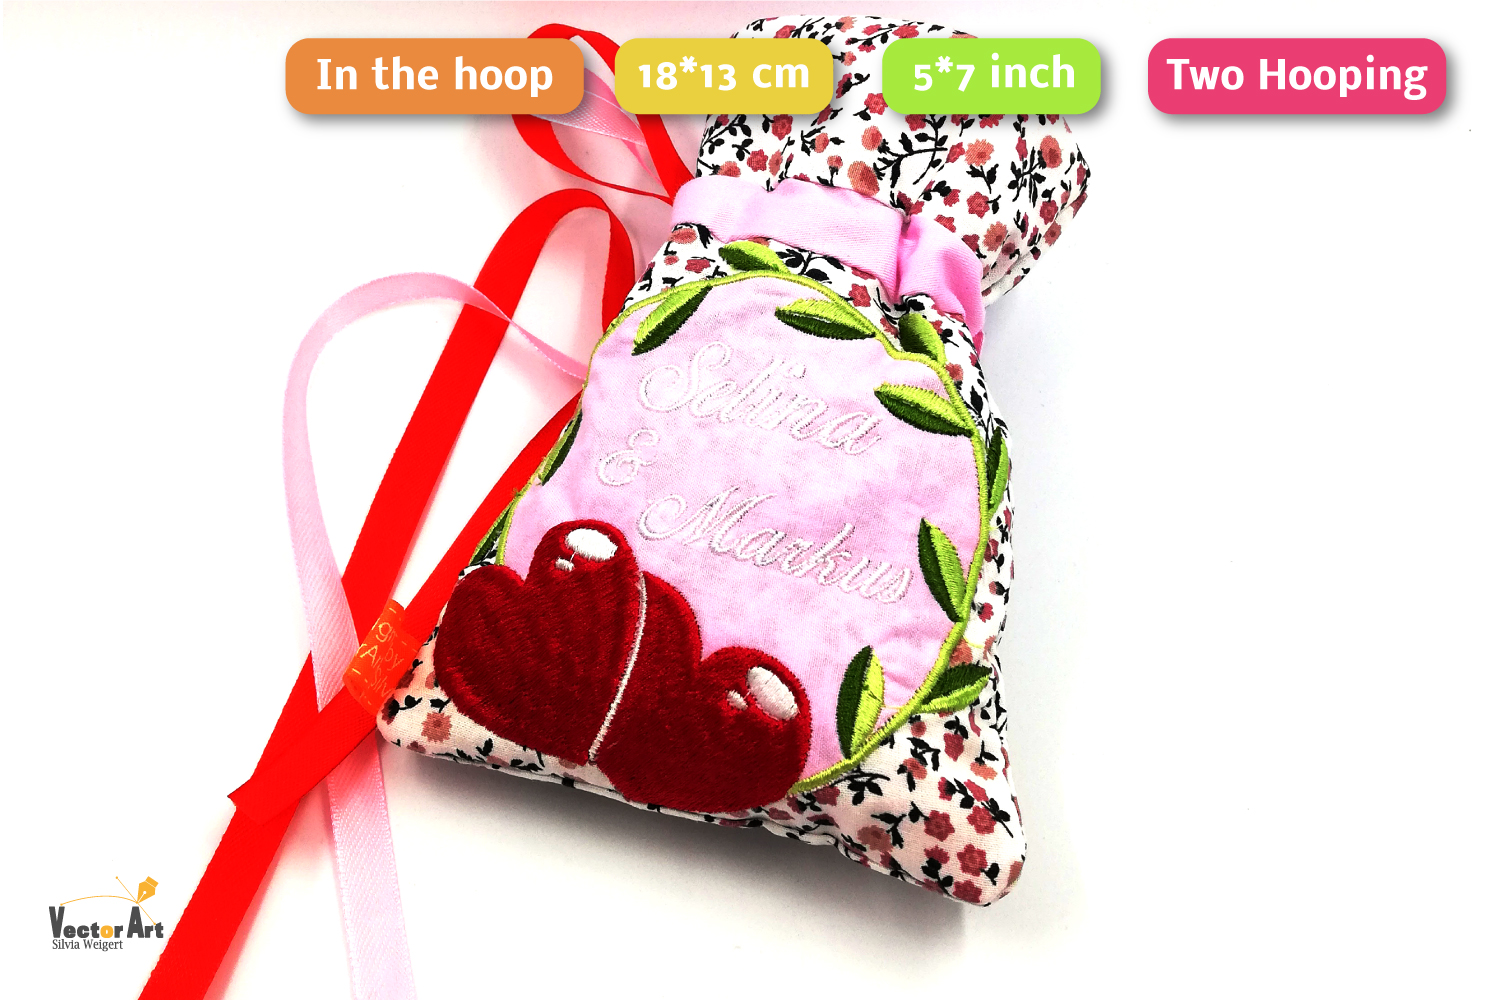 ITH -Drawstring Bag for Wedding Money Gift - Embroidery File example image 3